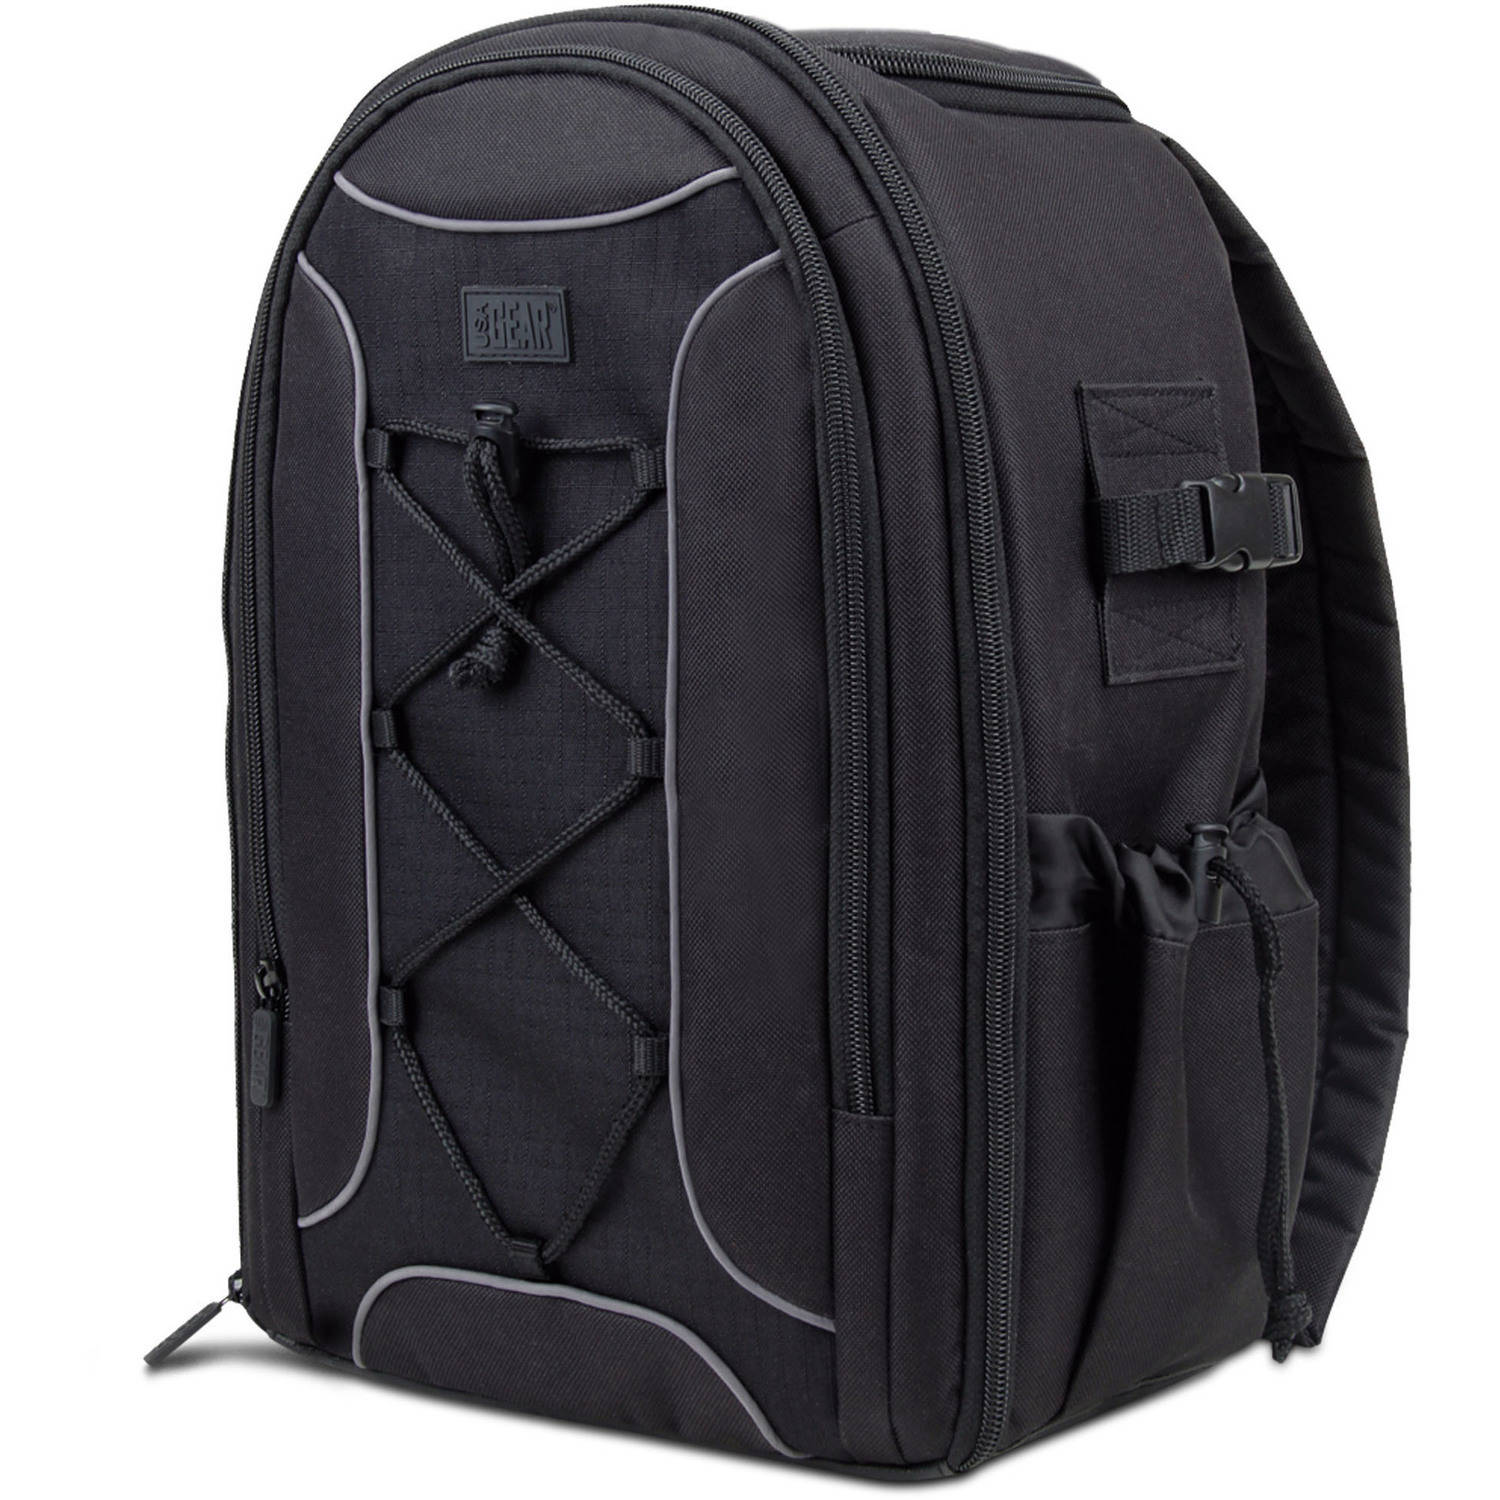 USA Gear S16 SLR Camera Backpack with Velcro Storage Dividers , Accessory Pockets & Waterproof Rain Cover - Works with Canon PowerShot SX540 HS , Nikon D3300 , Sony Alpha 7S II & More SLR Cameras